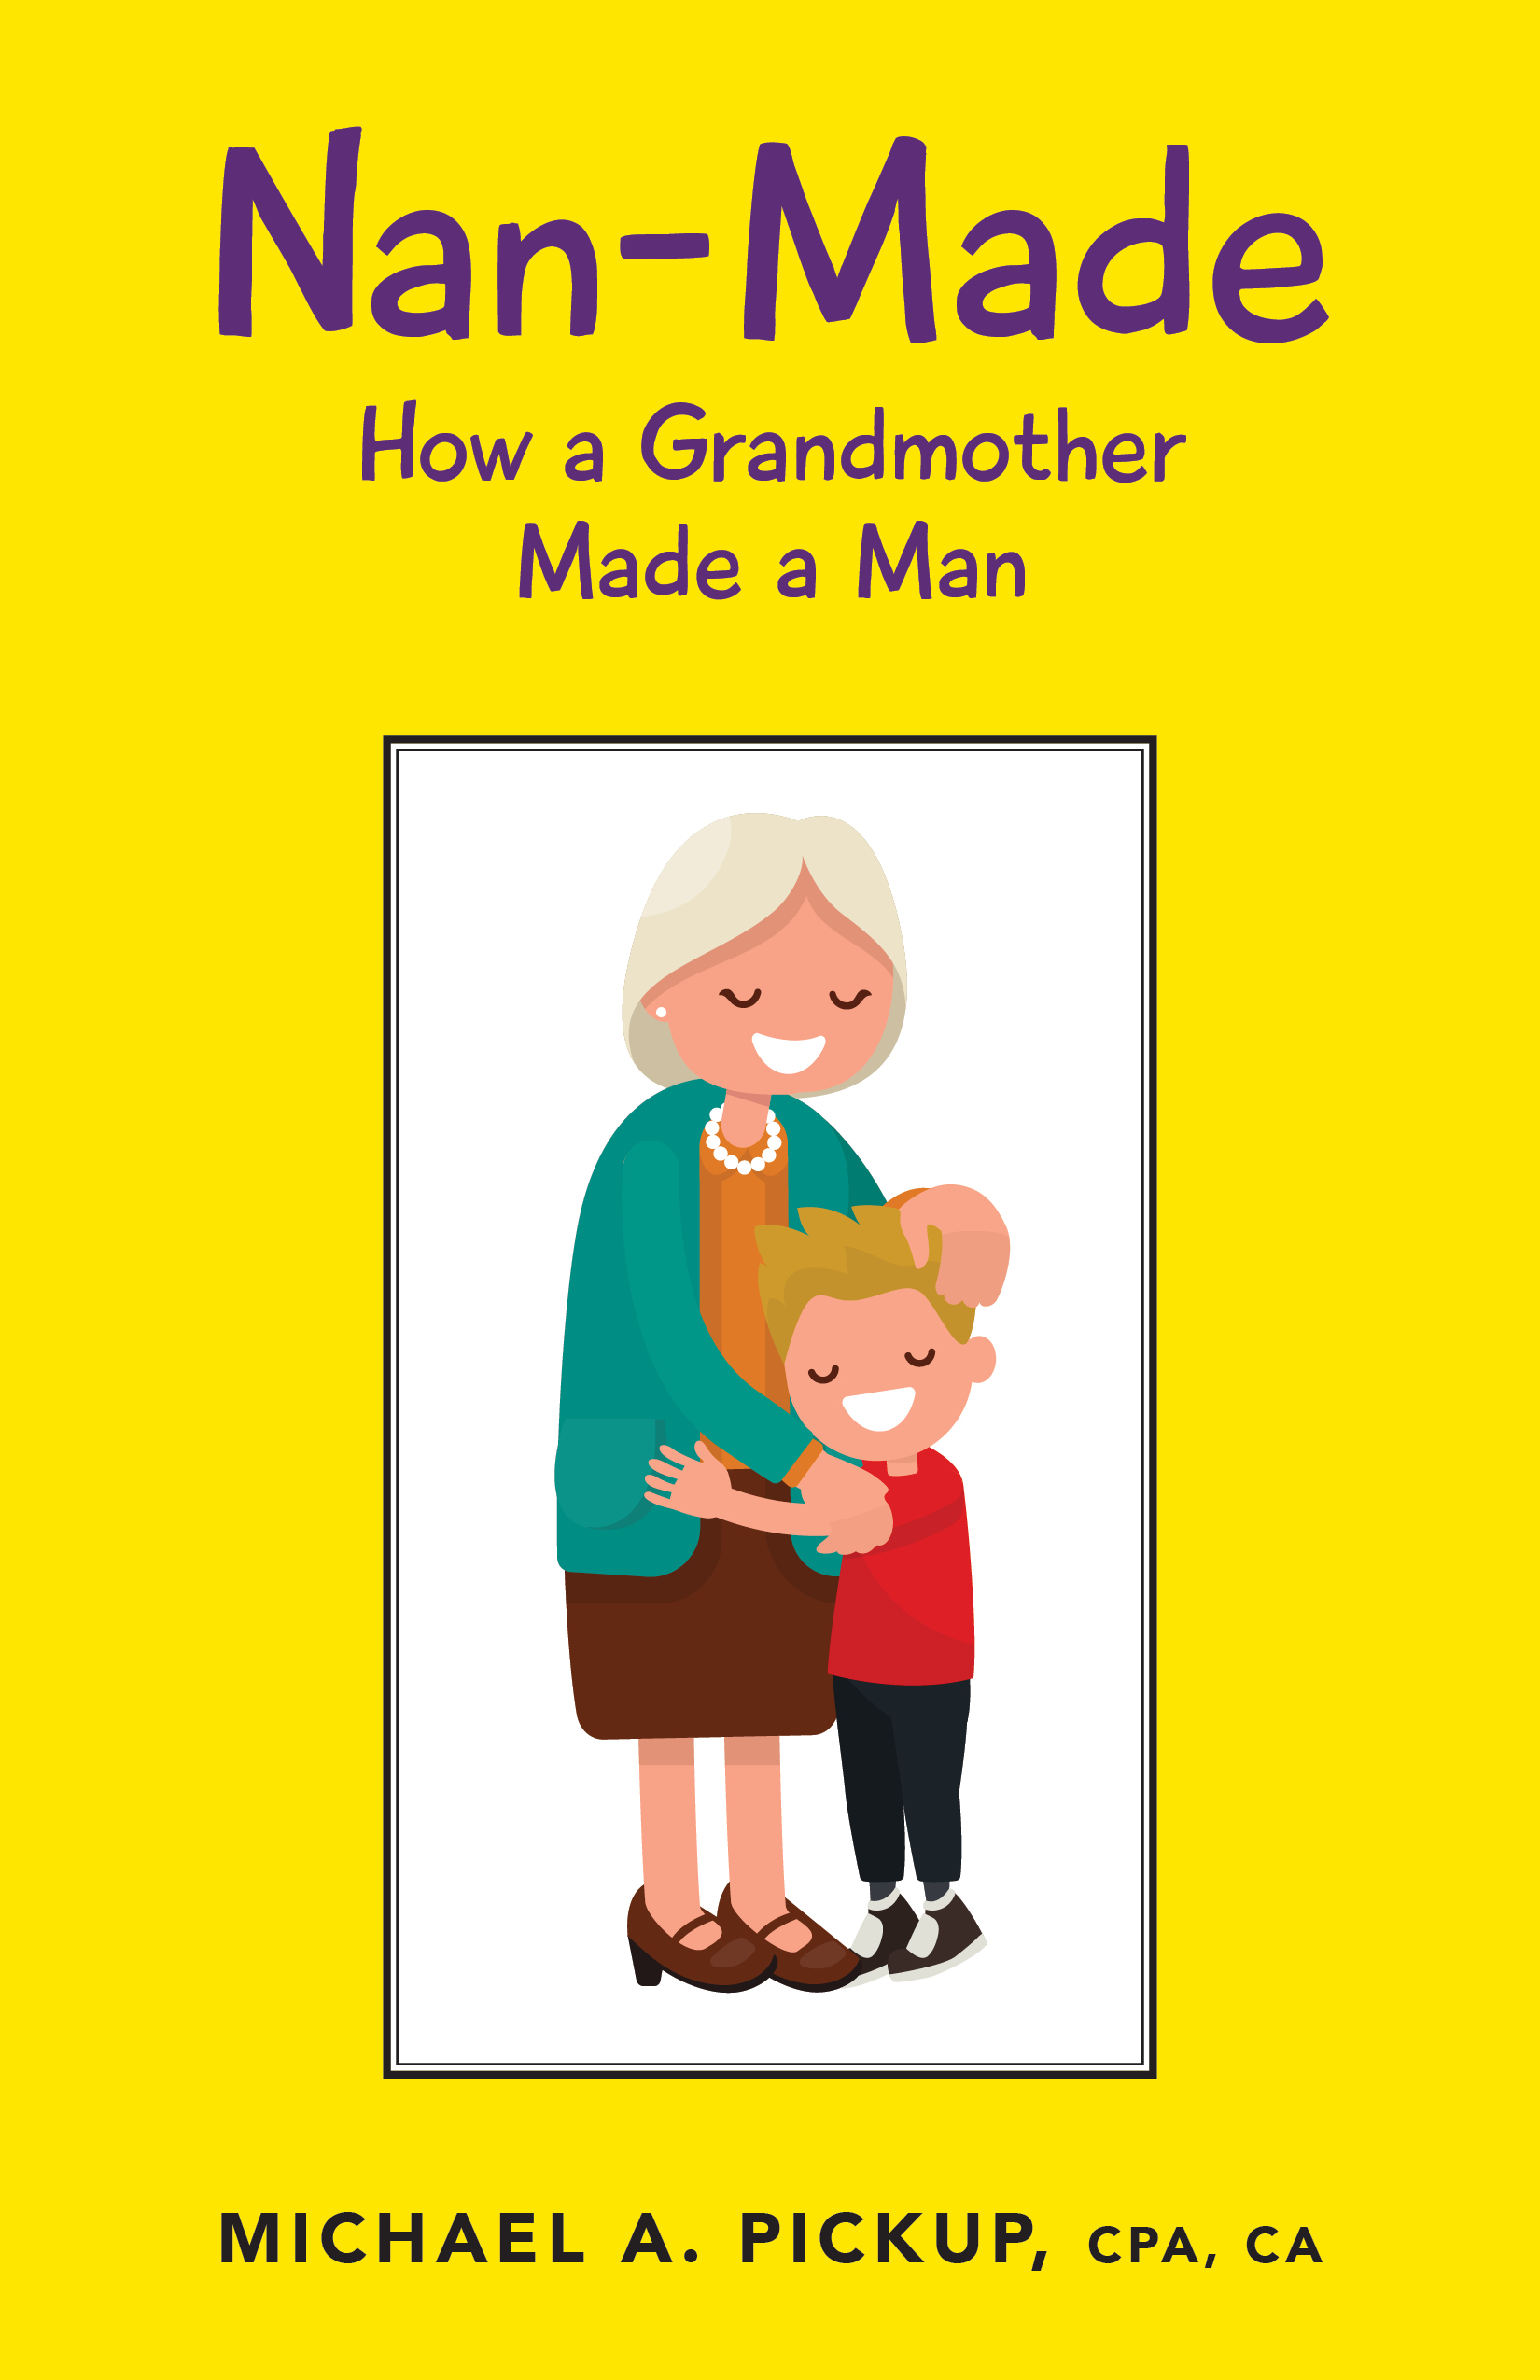 Nan-Made: How a Grandmother Made a Man, an Ebook by Michael Pickup, CPA,CA